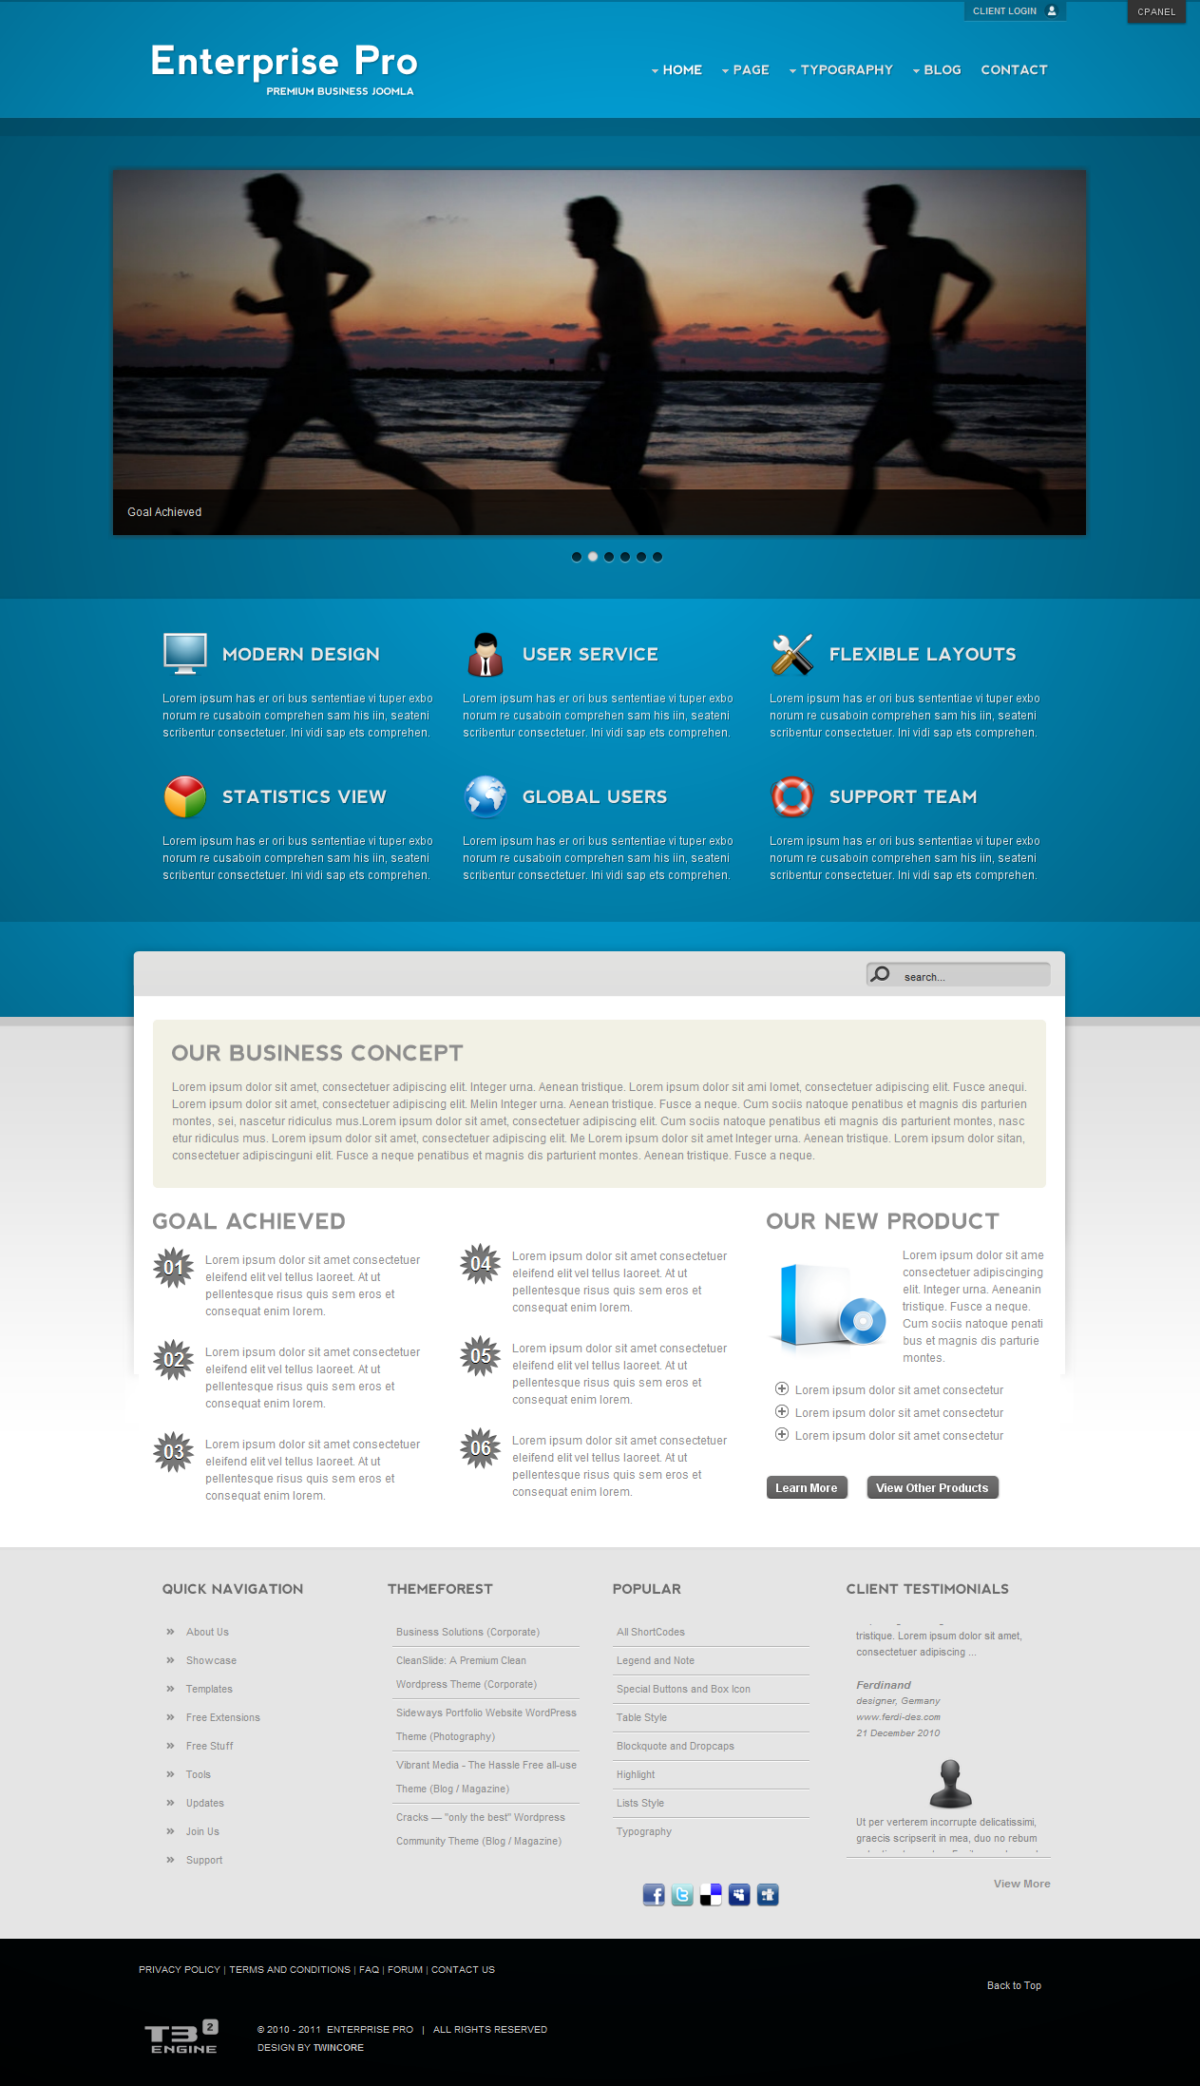 Enterprise Pro - Premium Business Joomla Template